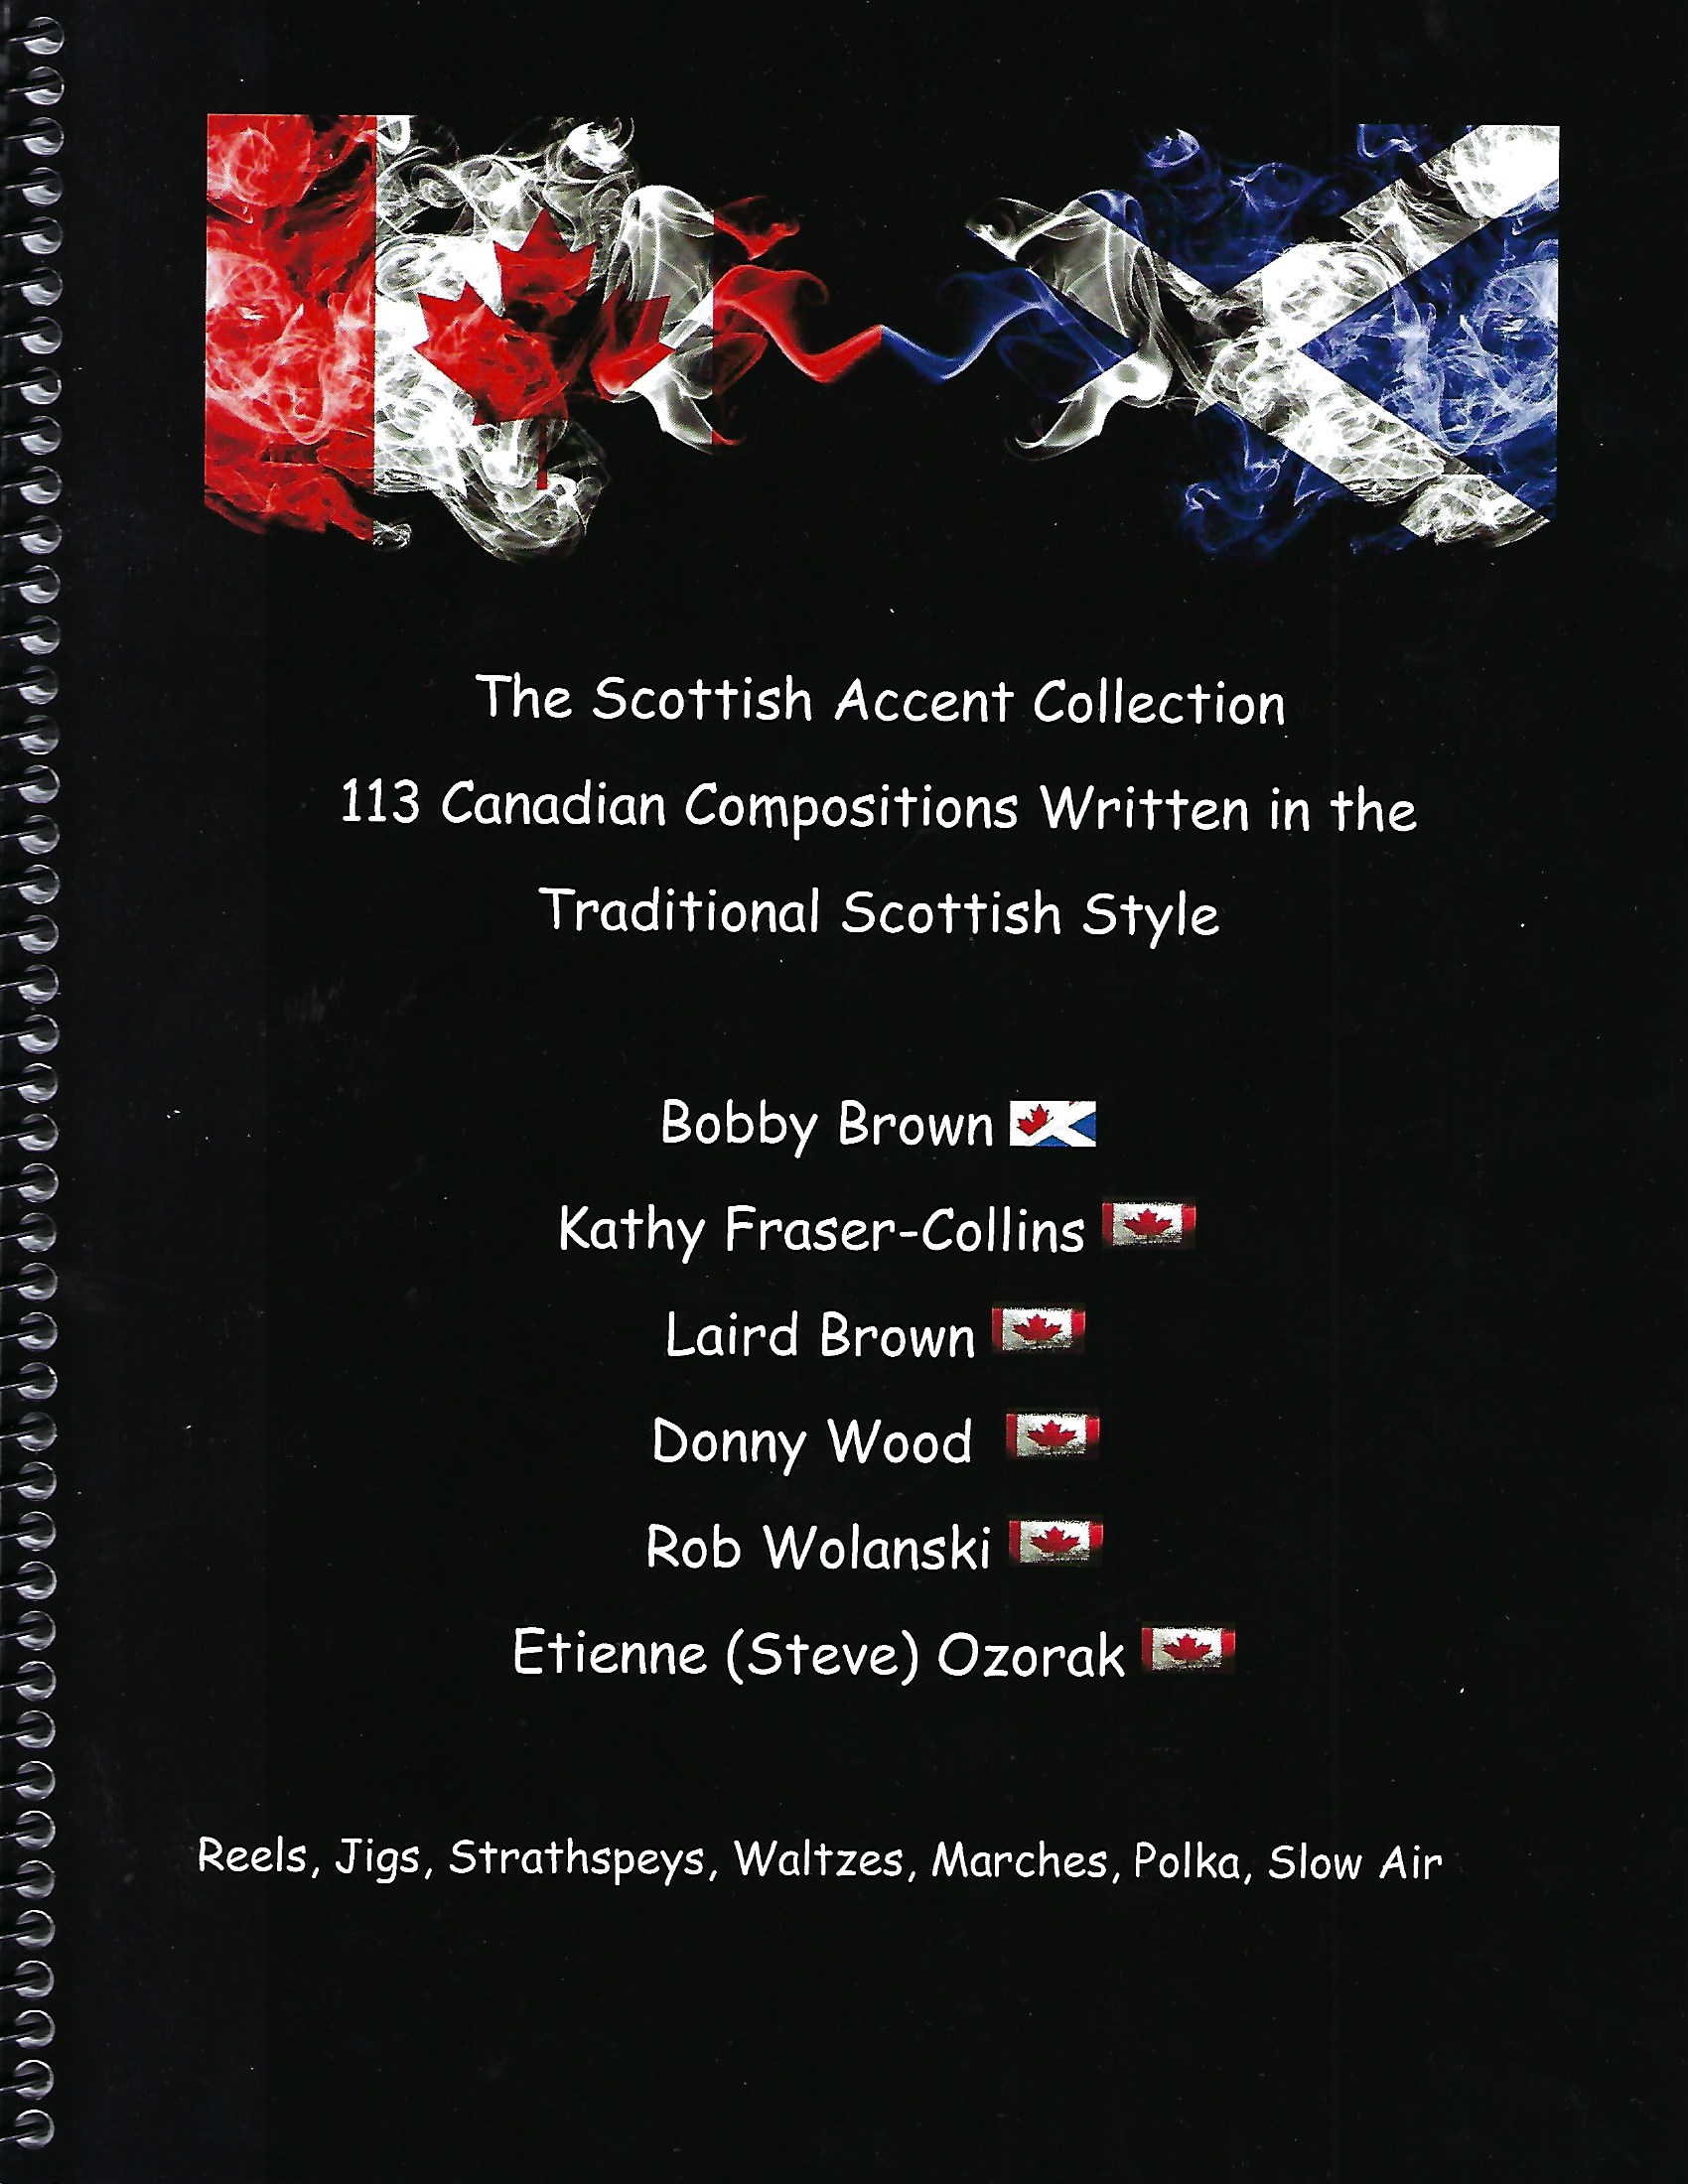 The Scottish Accent Collection